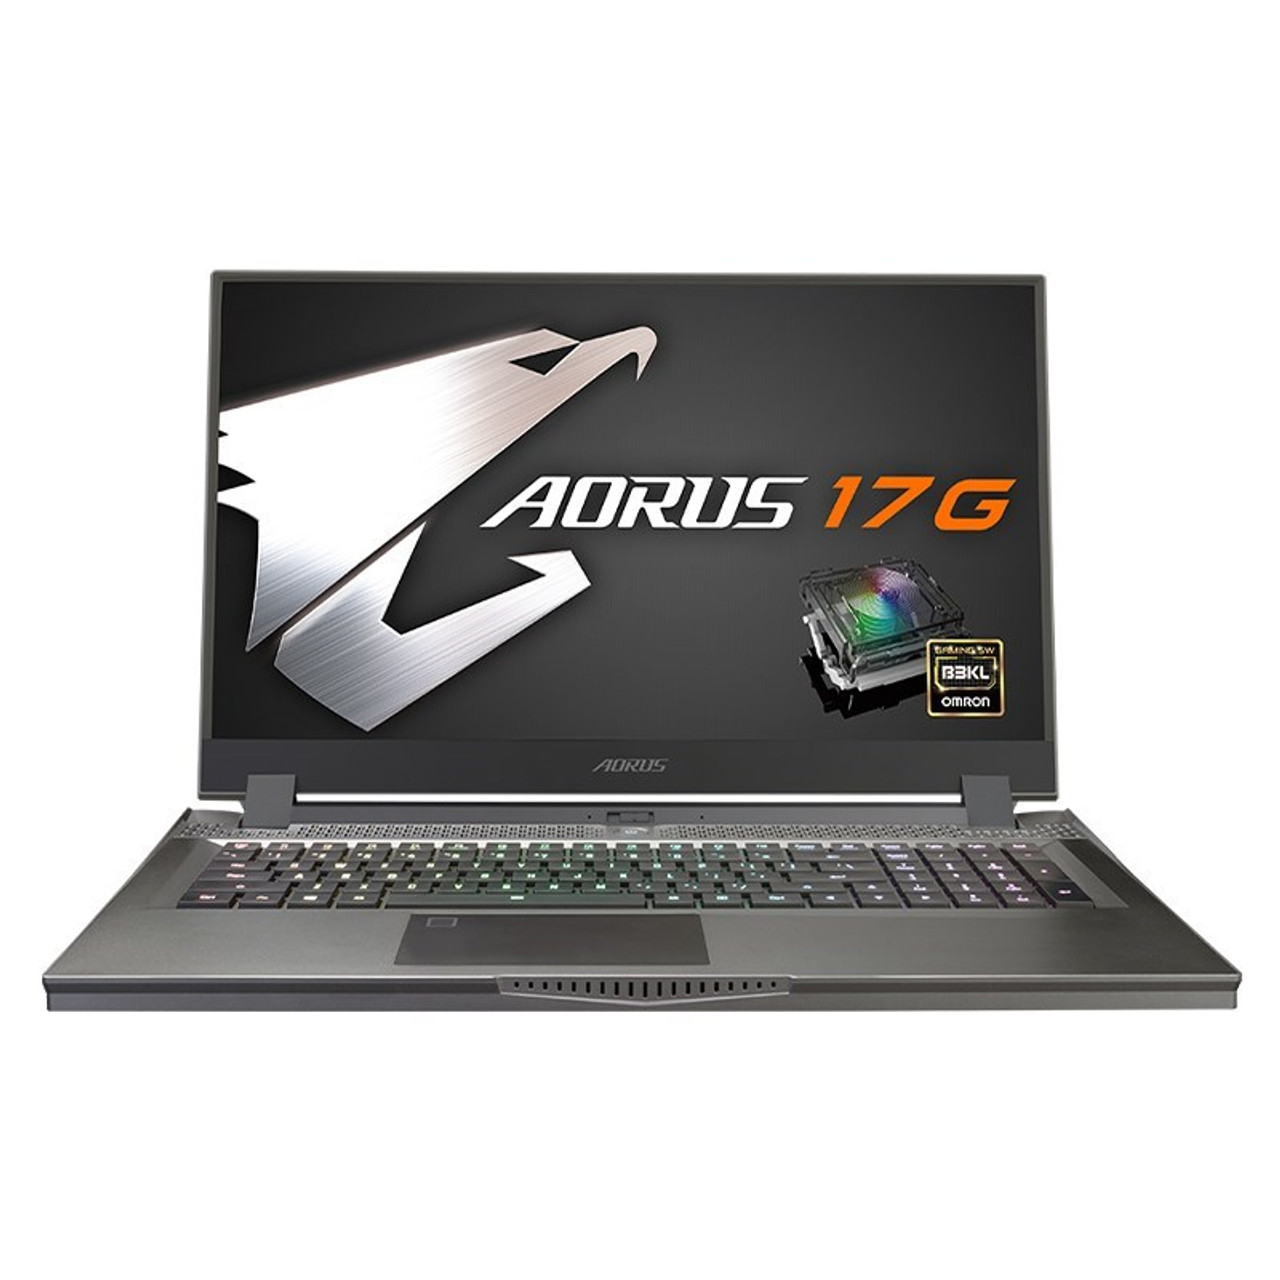 Image for Gigabyte AORUS 17G 17.3 240Hz Gaming Laptop i7-10875H 16GB 512GB RTX2070 W10H CX Computer Superstore